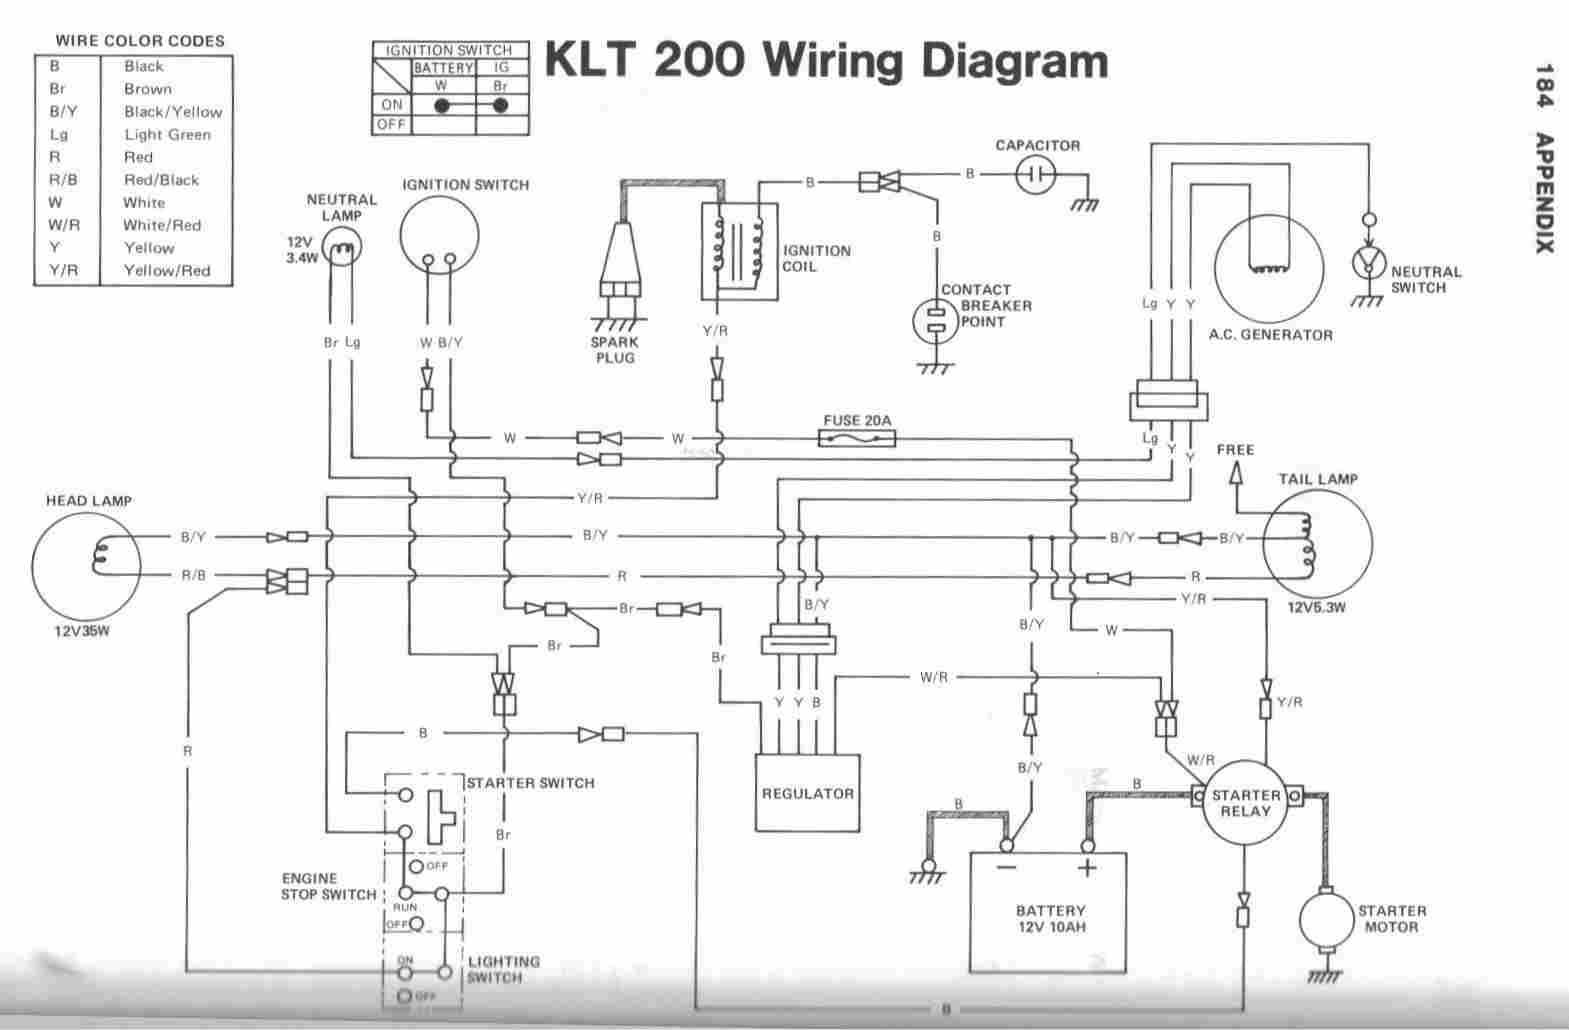 wiring diagram for domestic building